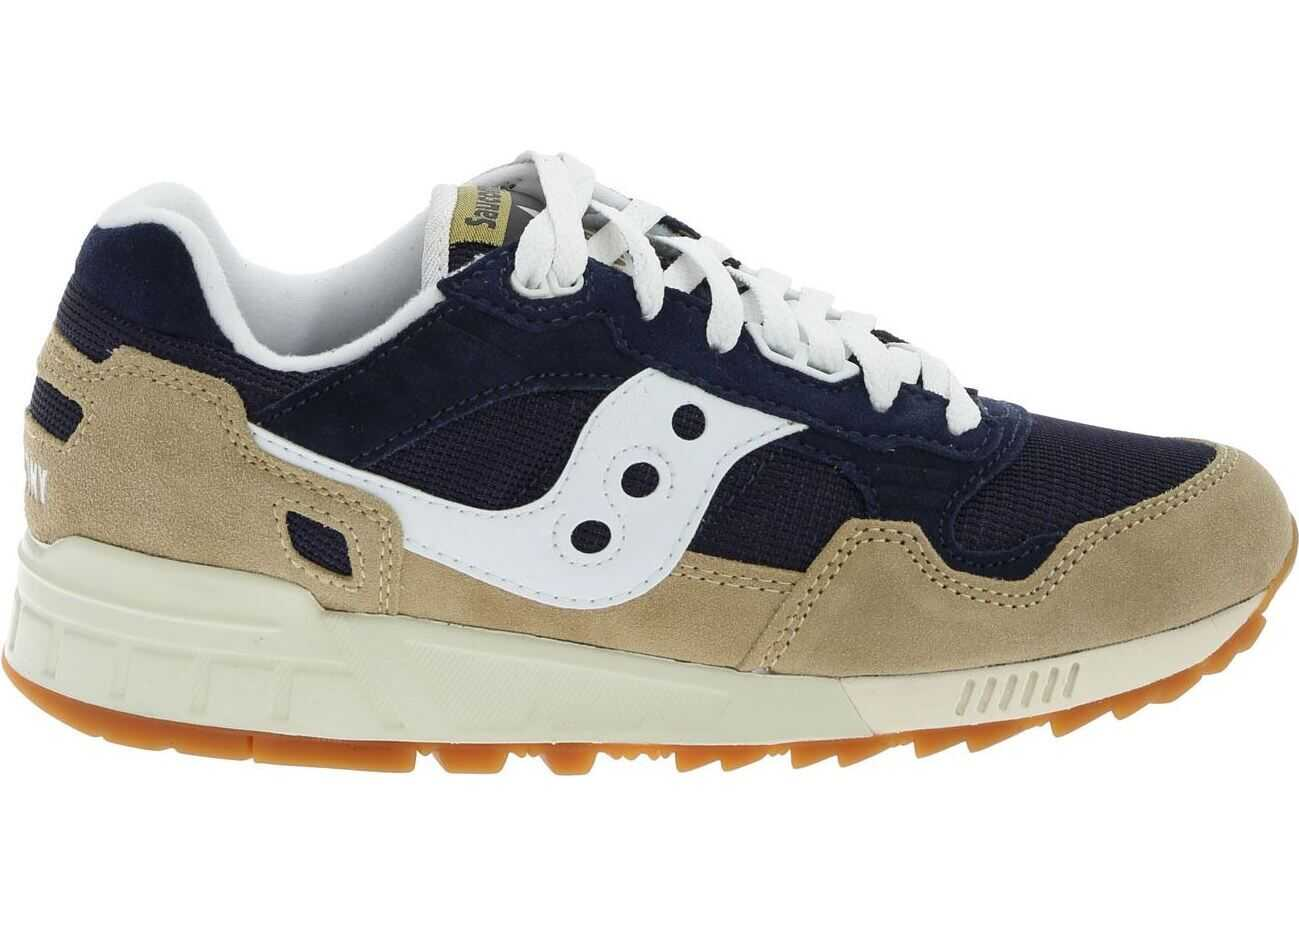 Saucony Shadow 5000 Sneakers In Blue And Beige Blue